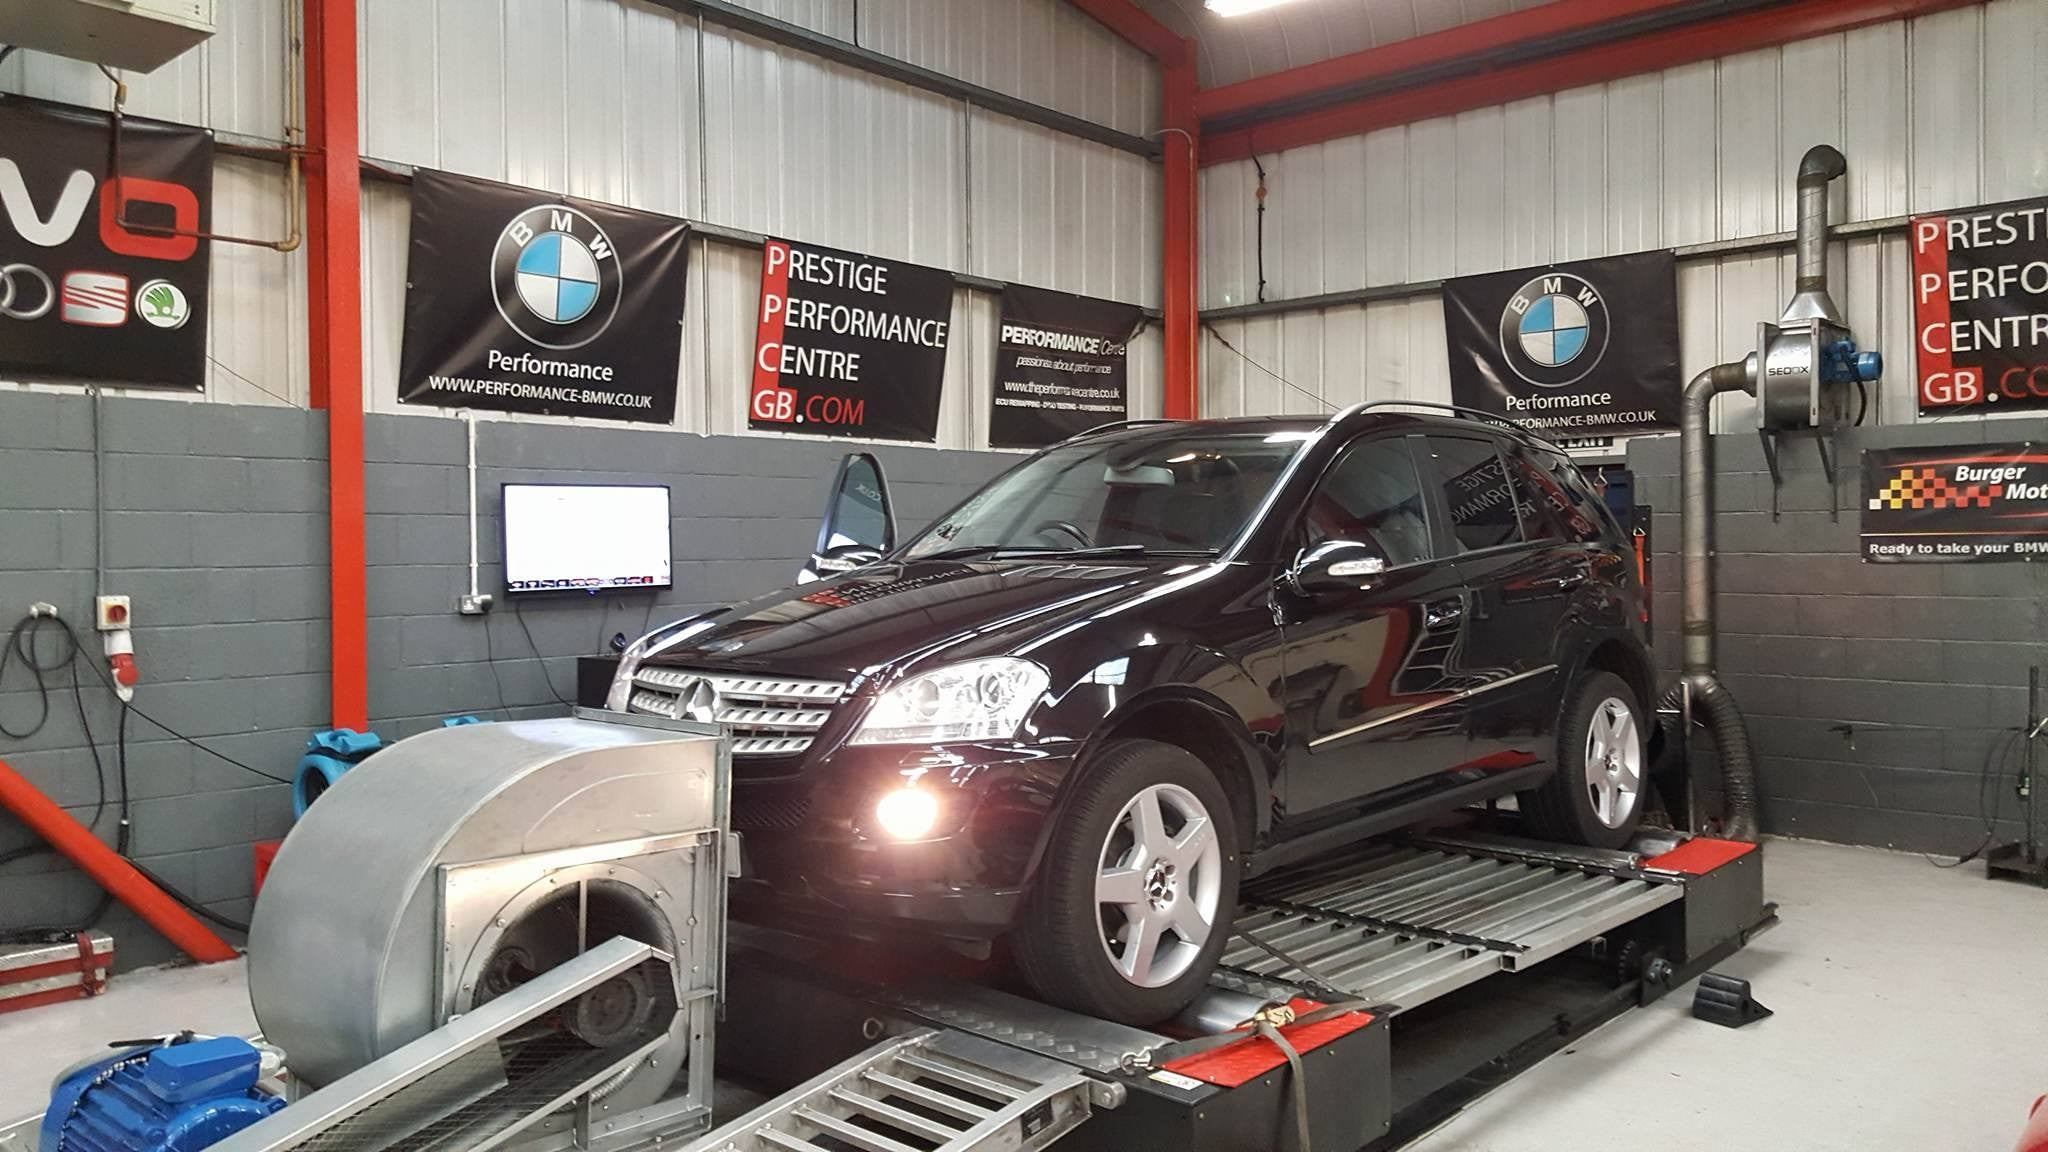 Mercedes ML320 CDI - CustomPro remap